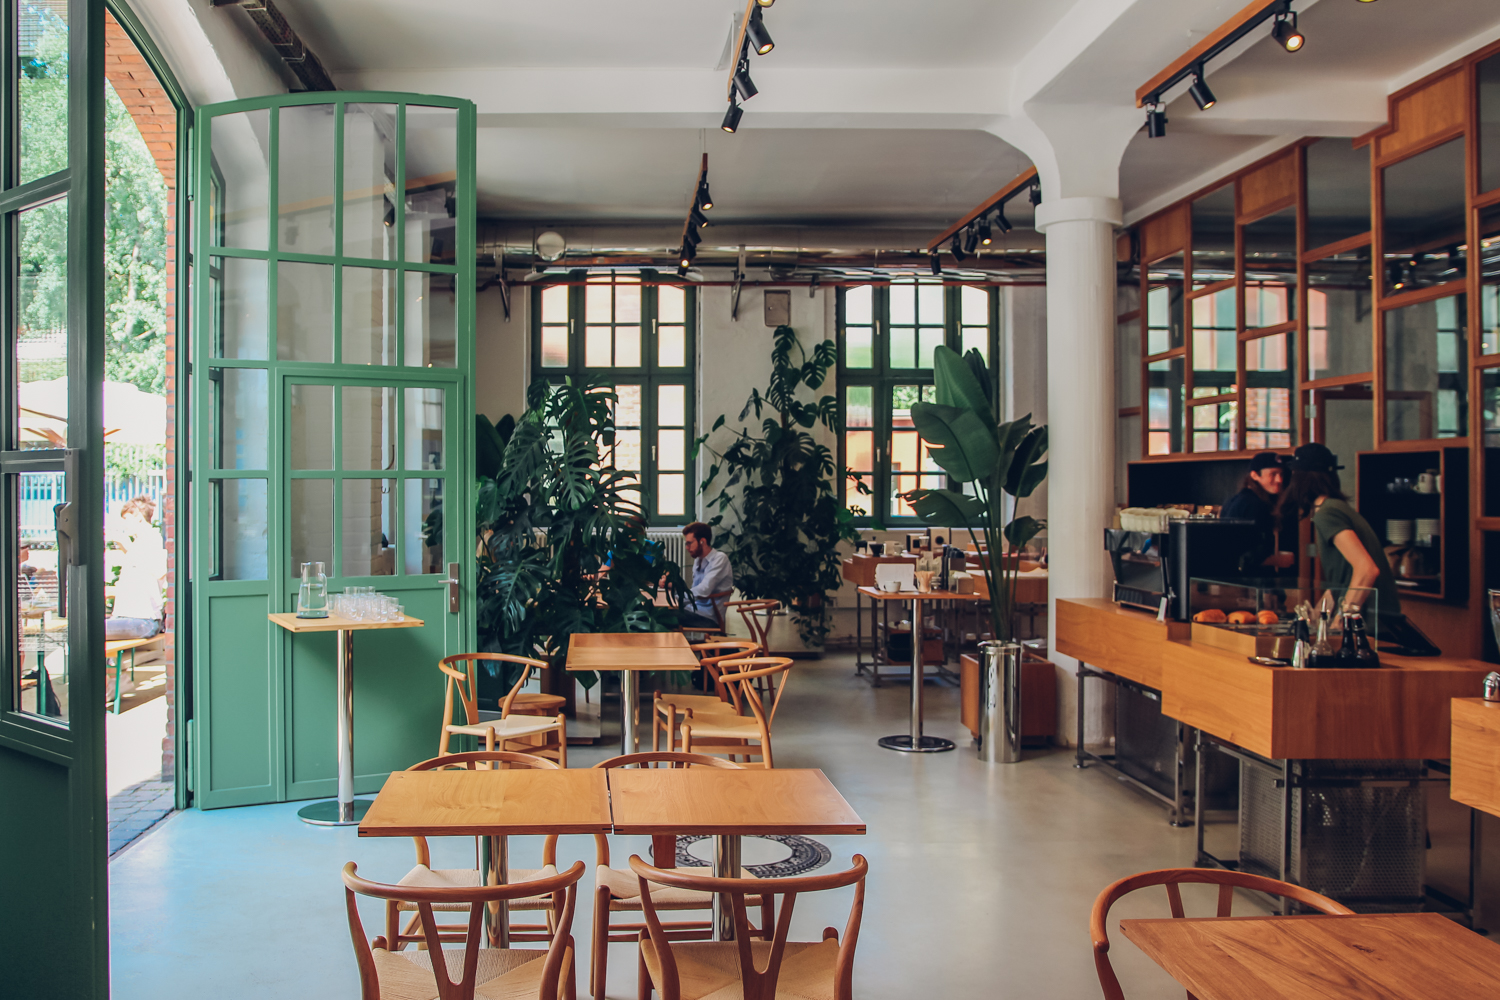 The Best Coffee Places in Kreuzberg